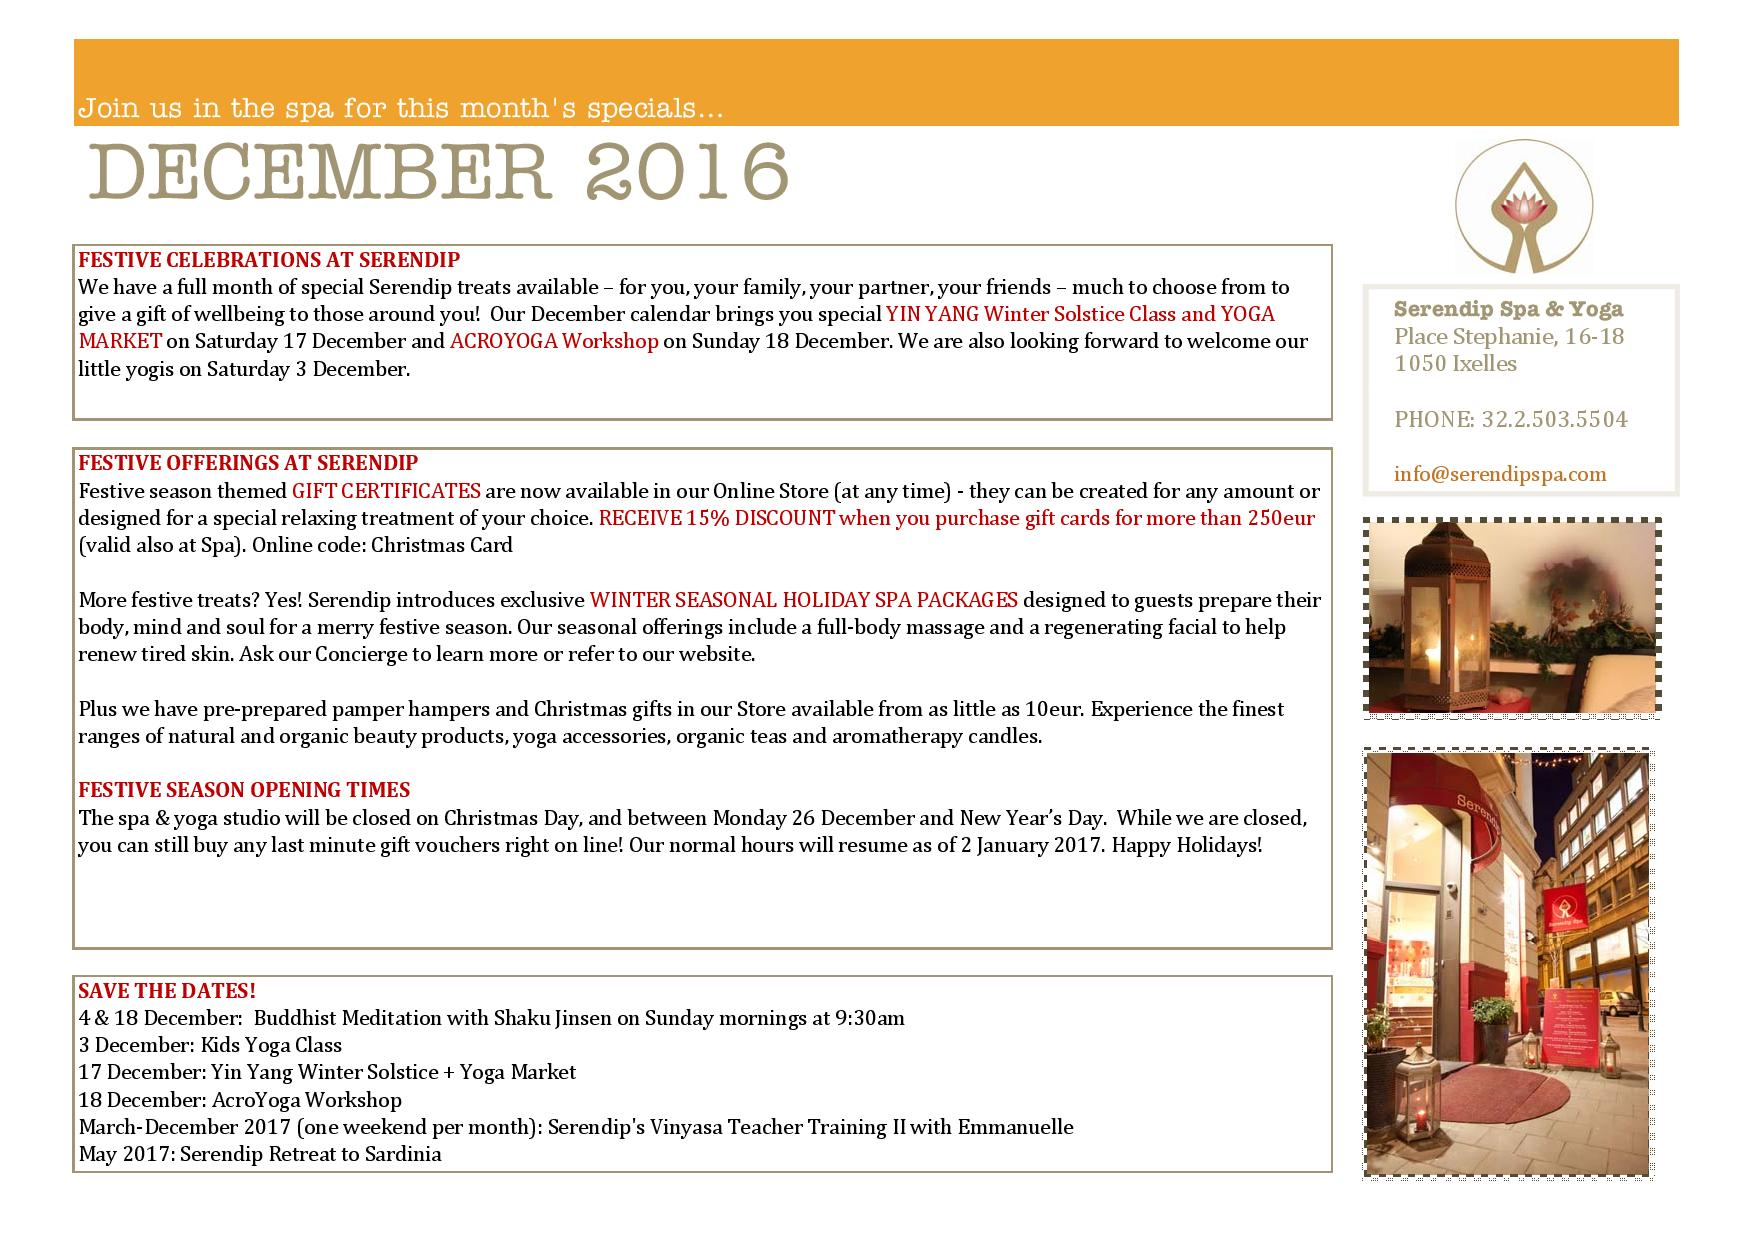 Serendip Spa and Yoga Calendar 2016_December_A4 BACK-page-001.jpg